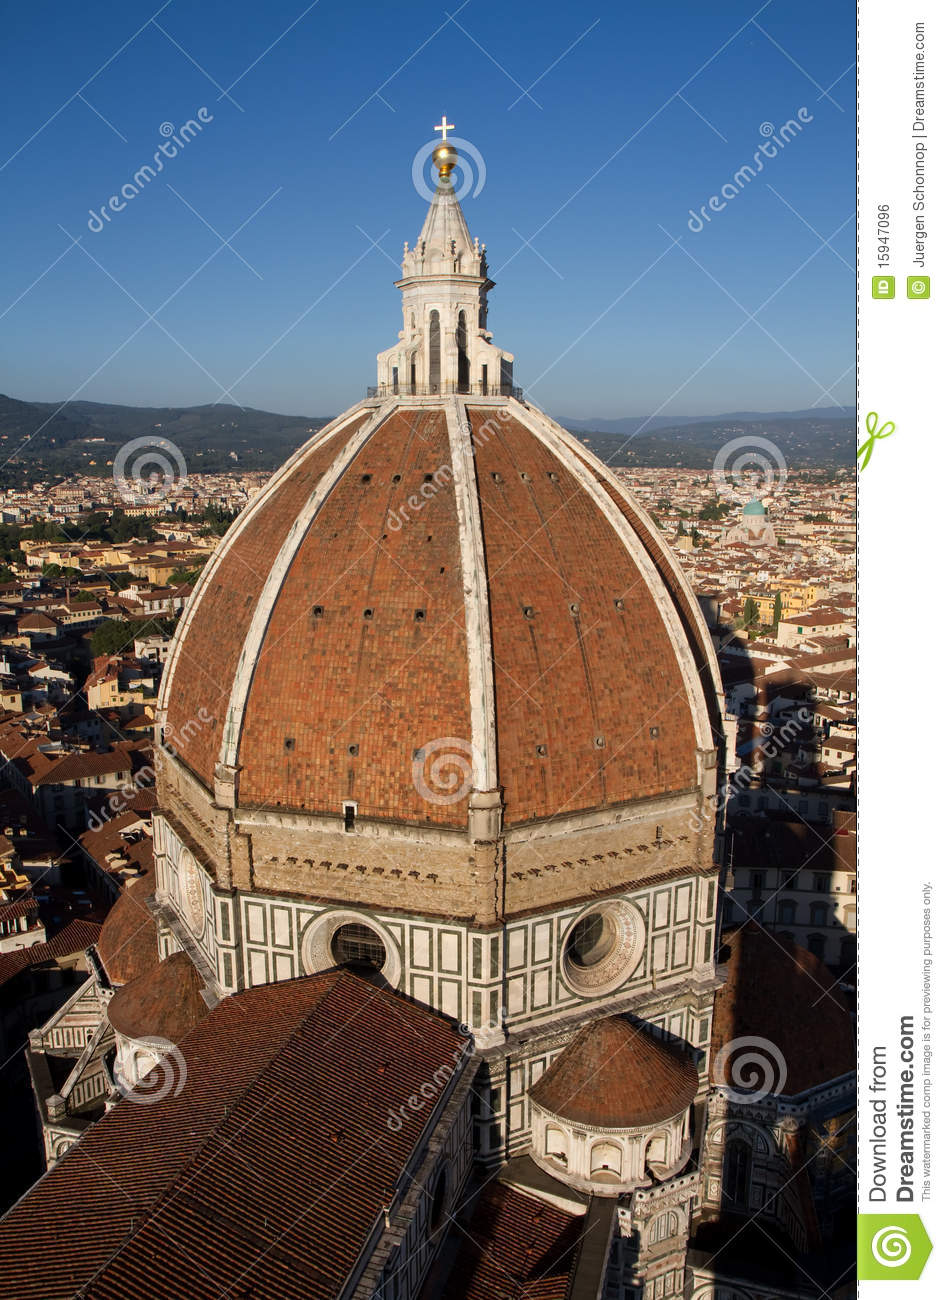 Cathedral dome clipart #19